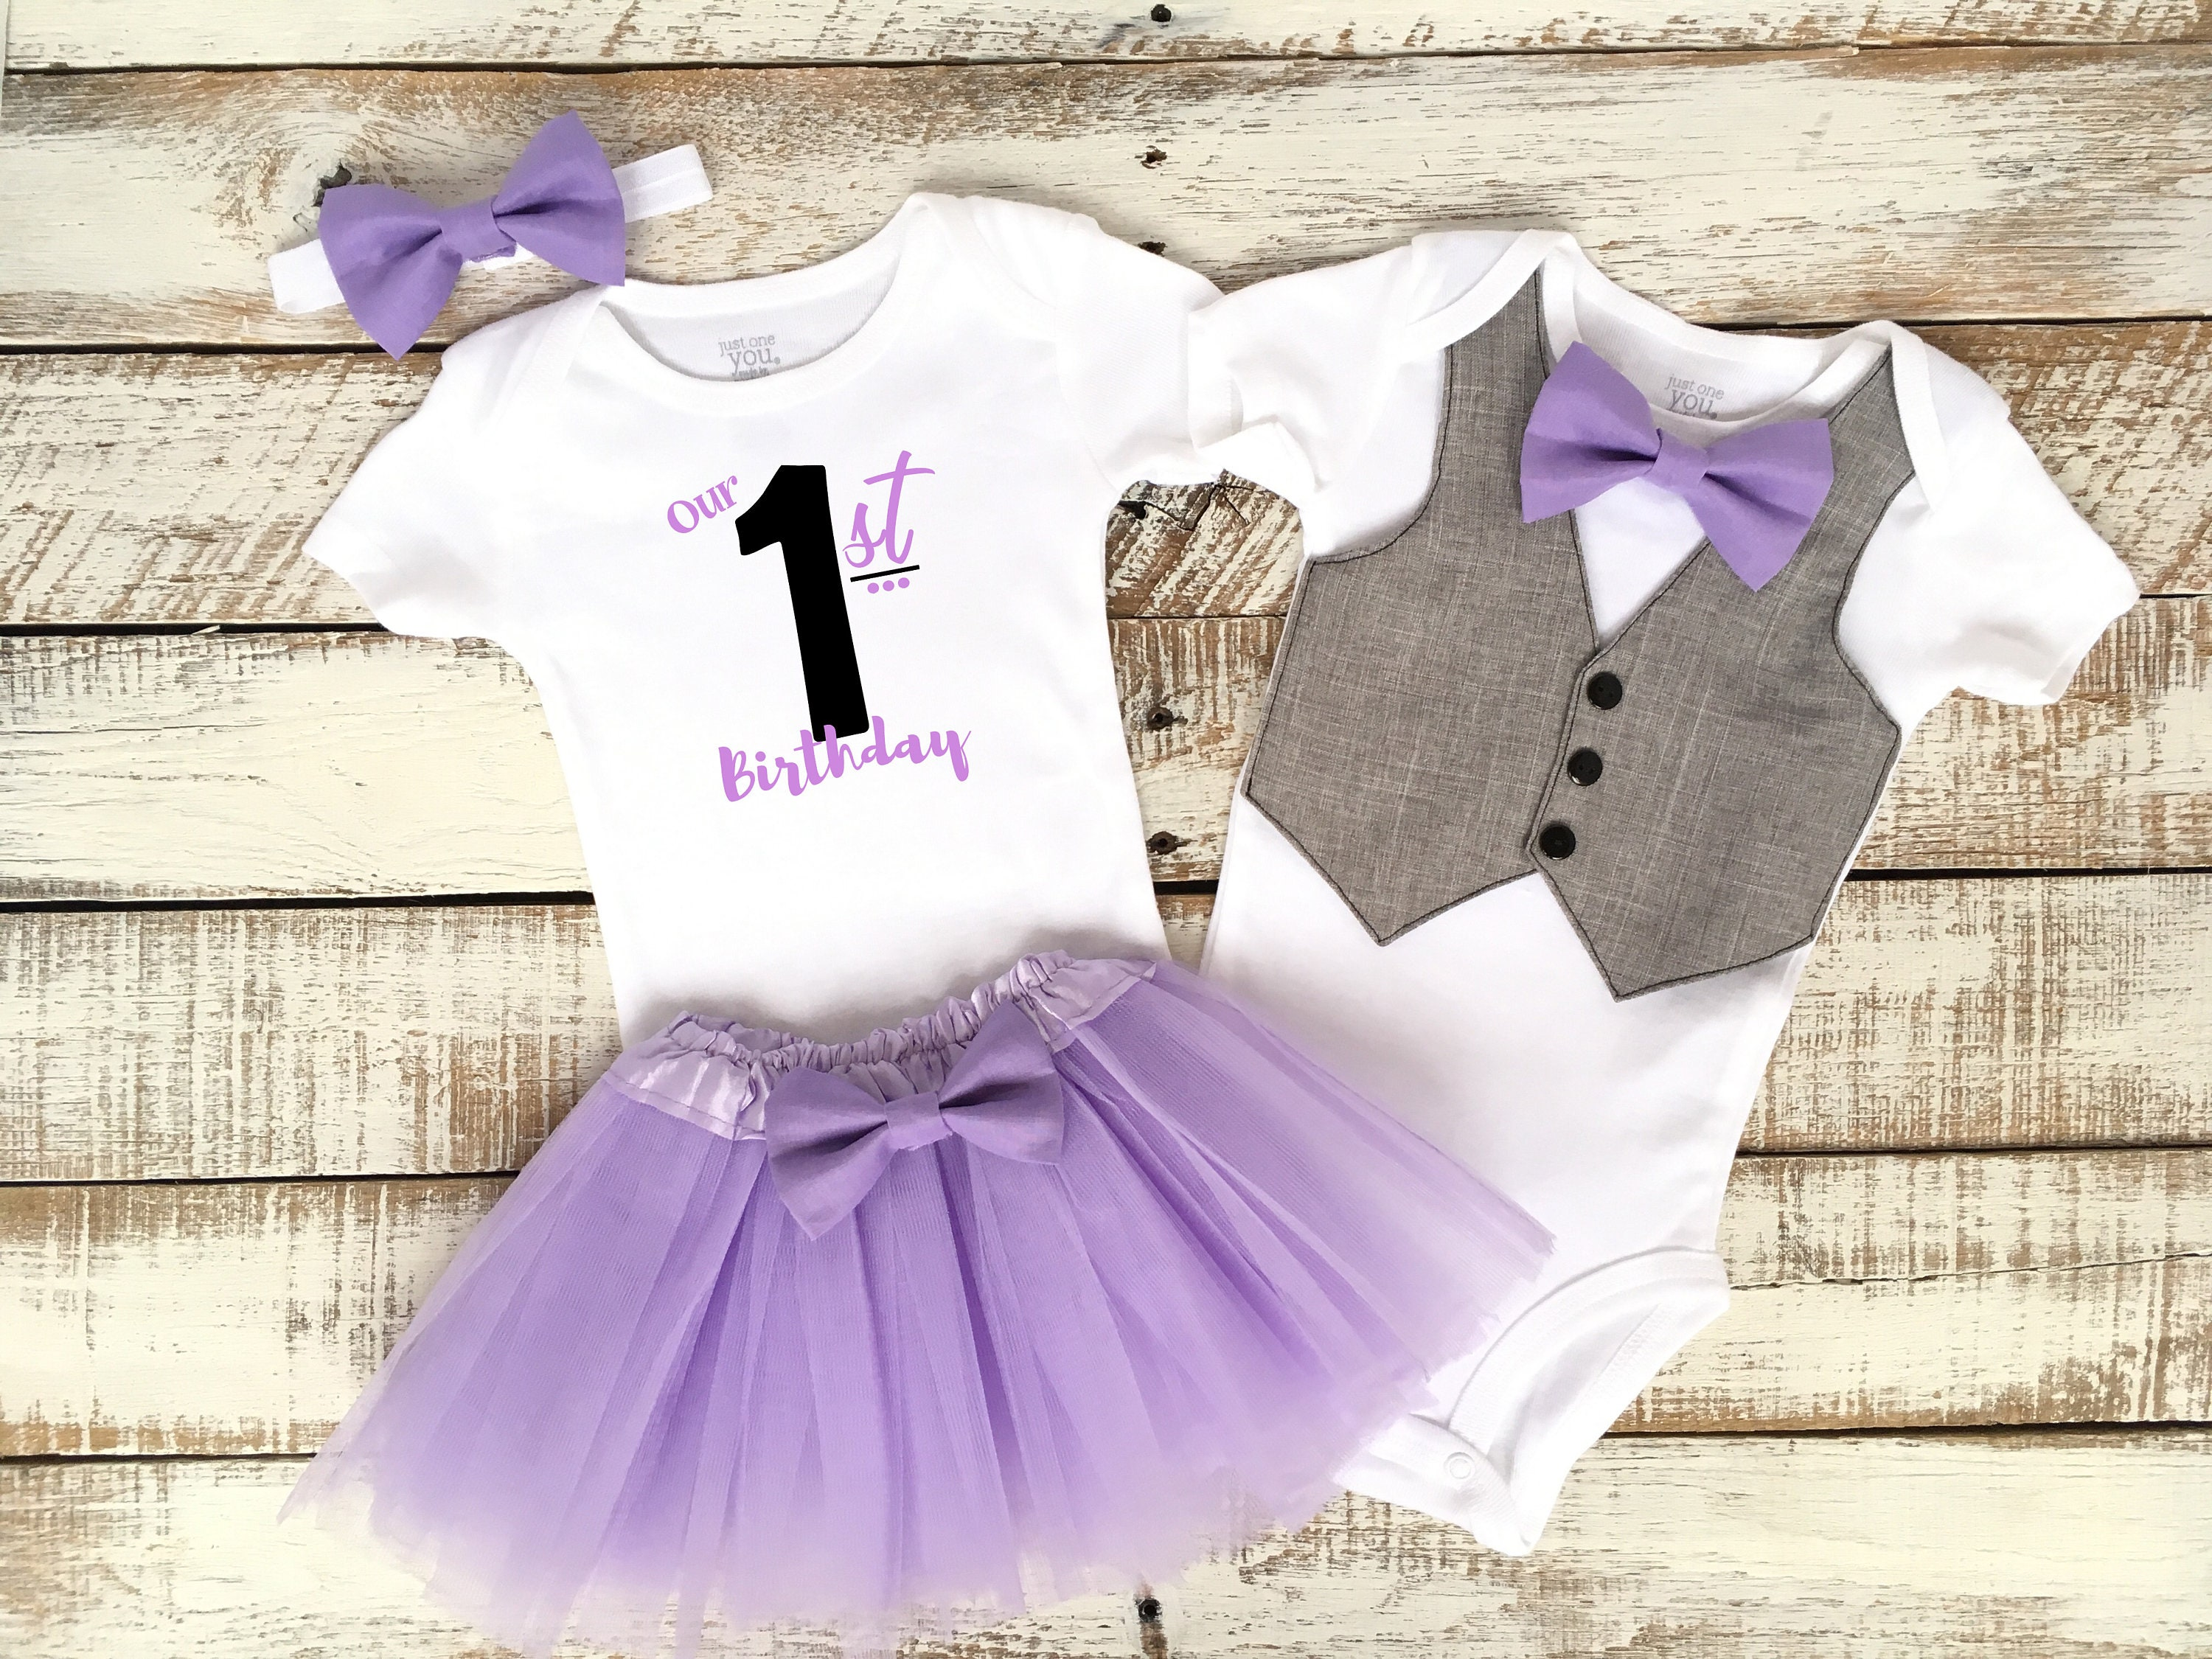 1fa8432429459 Boy Girl Twins 1st Birthday Outfits Our First Birthday   Etsy